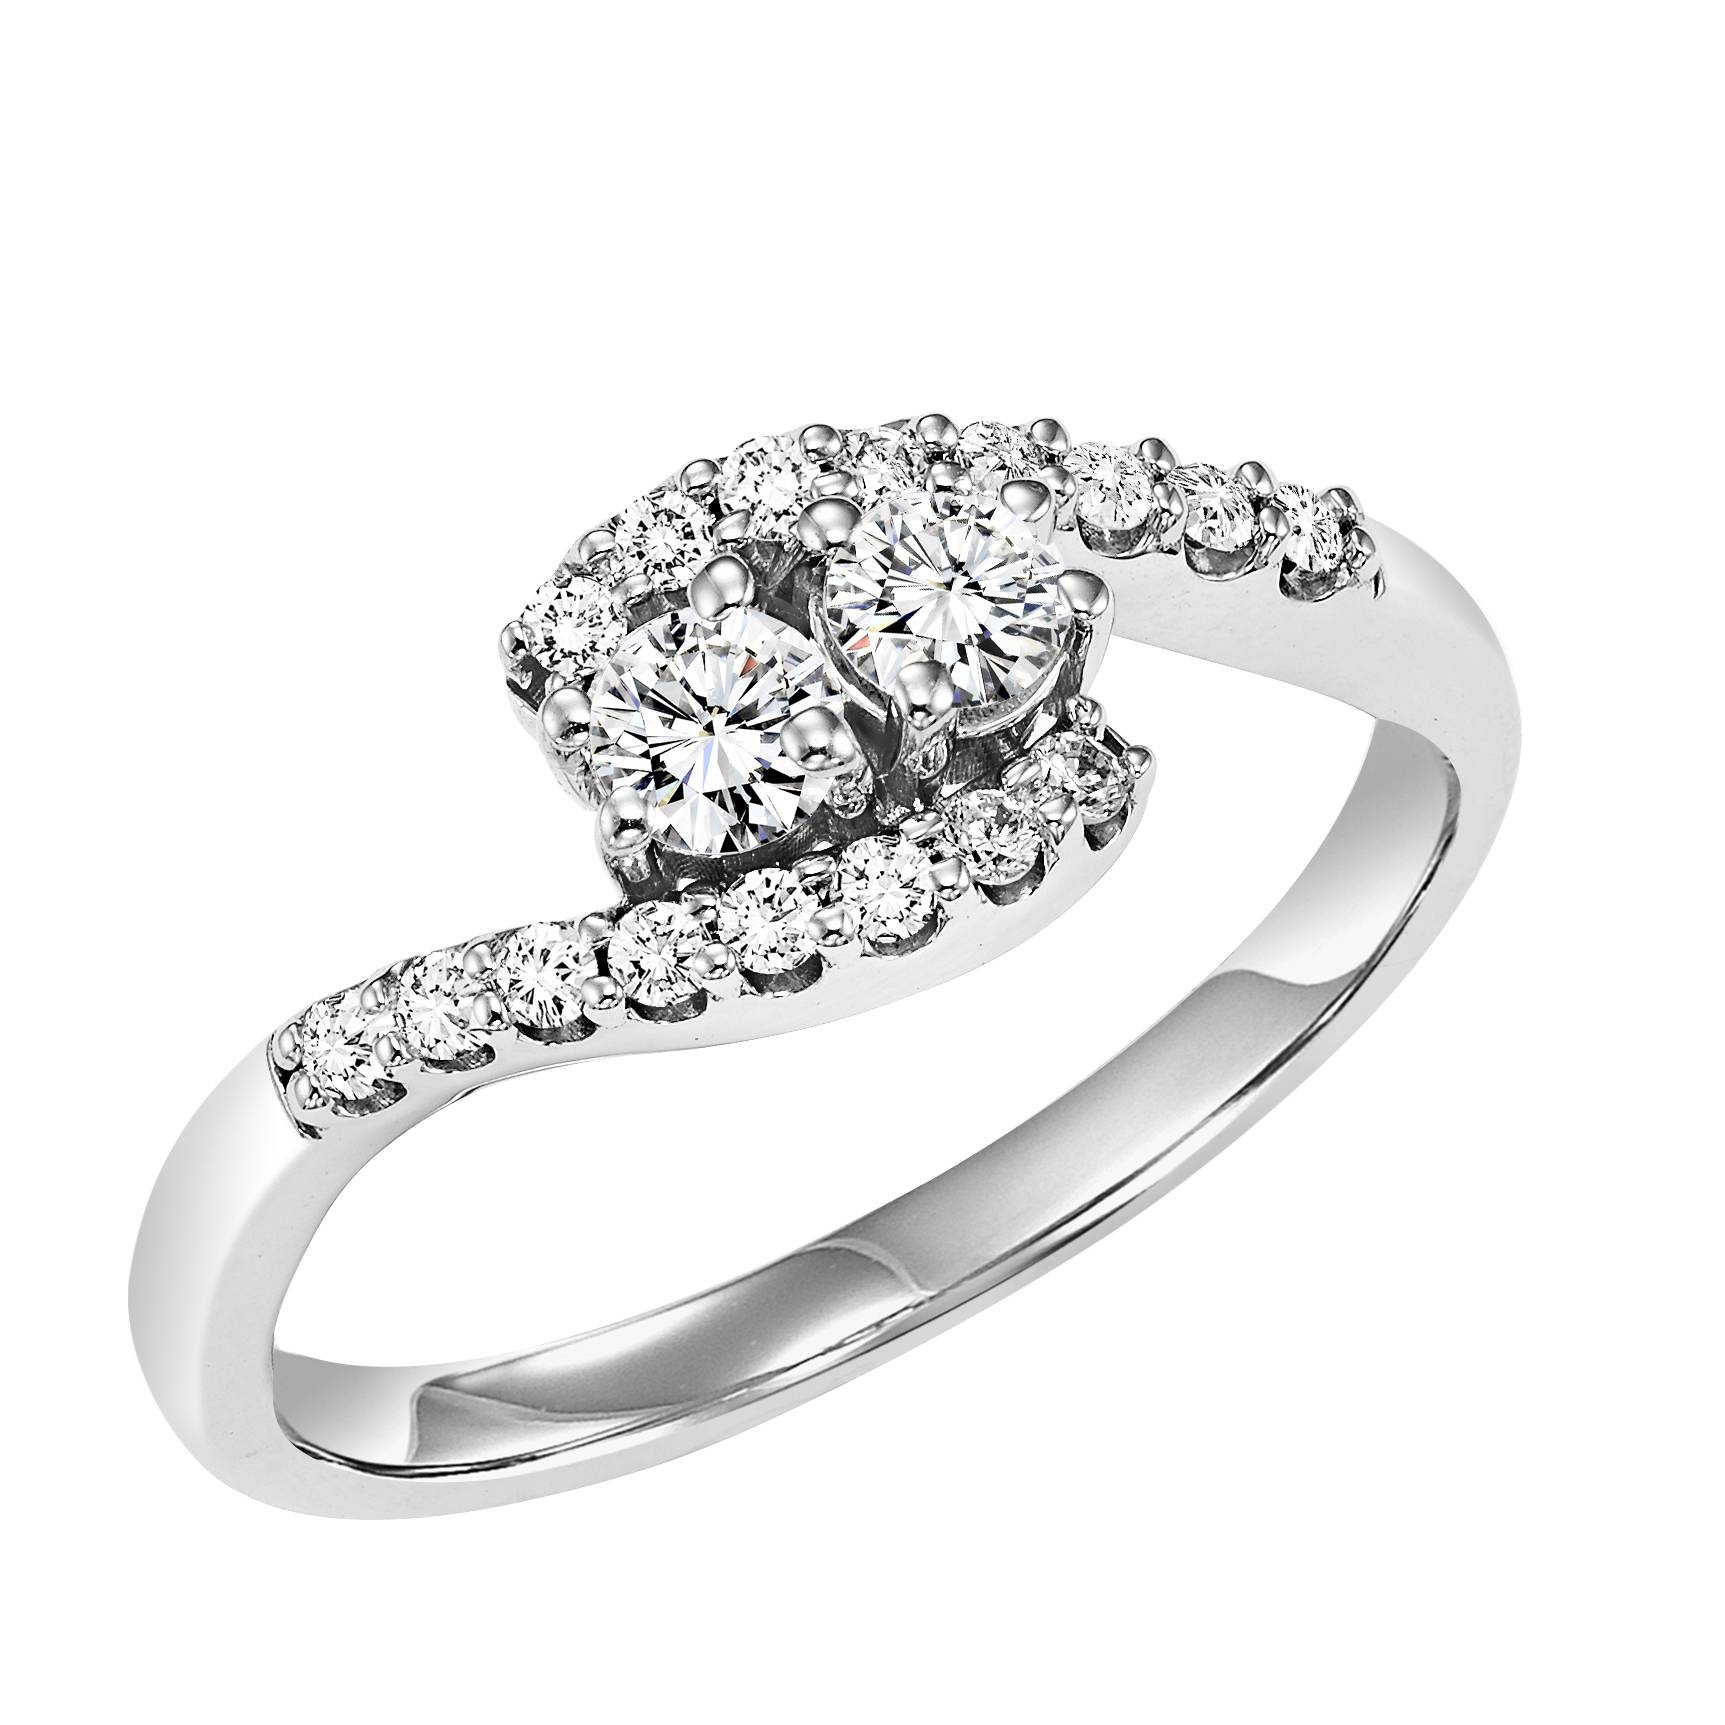 Wedding Rings : Rogers And Holland Helzberg Diamonds Coupons Kay Within Rogers And Holland Engagement Rings (View 13 of 15)